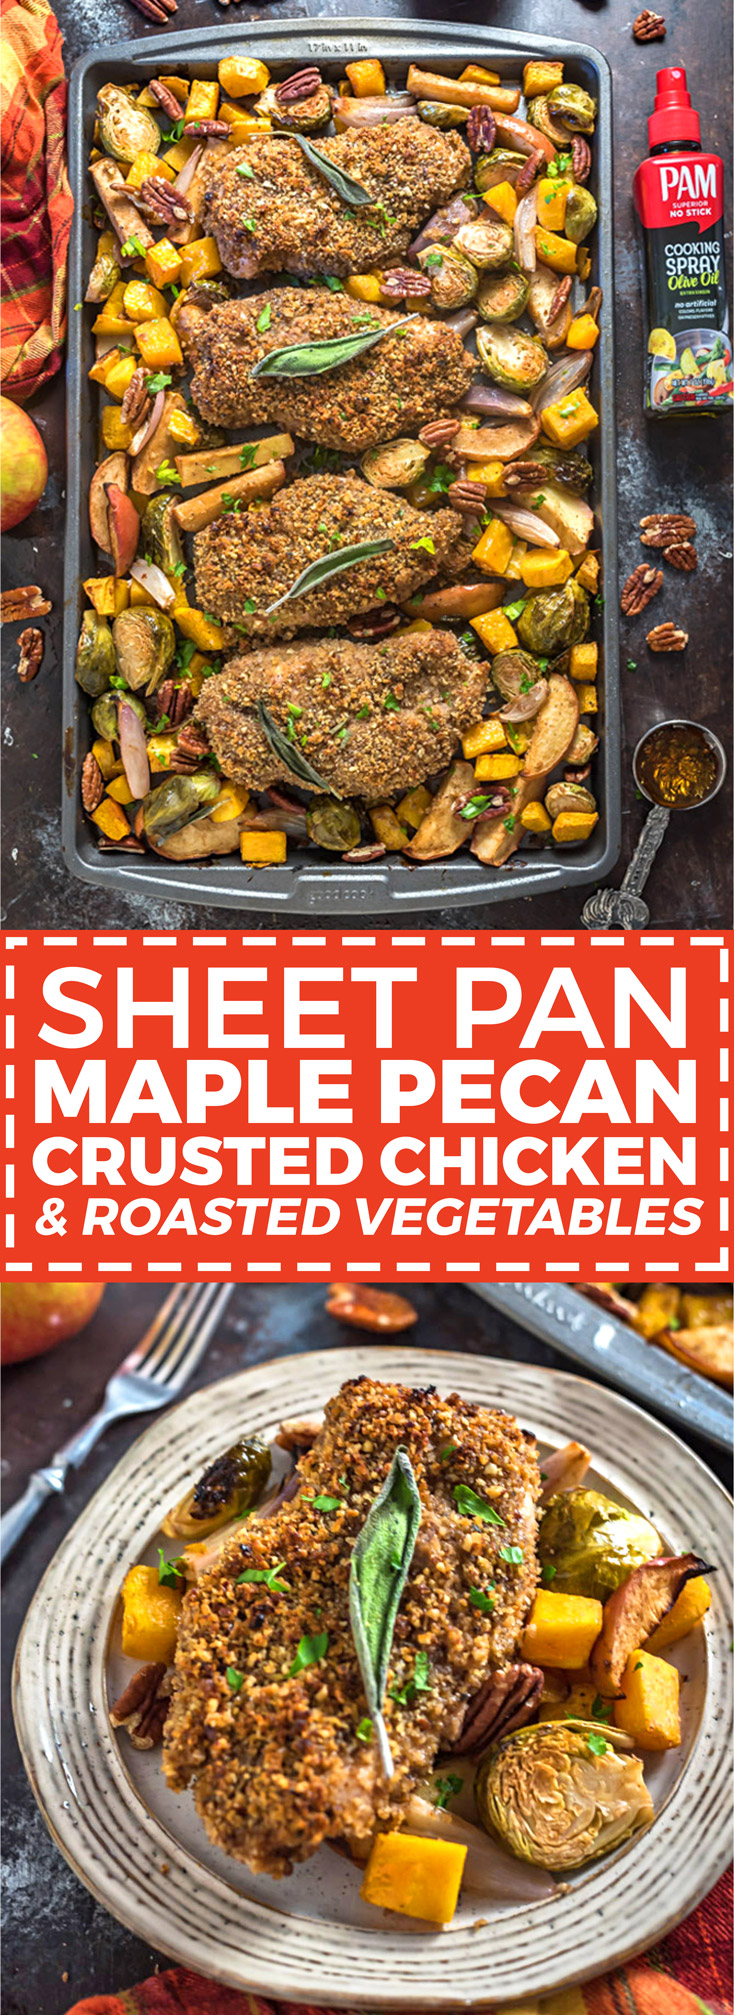 Sheet Pan Maple Pecan Crusted Chicken & Roasted Vegetables. 🍂 Want the flavors of fall in your dinner or meal plan dish? Loaded up with pecans, maple syrup, balsamic vinegar, Dijon mustard, sage, & fall veggies, this baked recipe will have you tasting autumn in every bite. | hostthetoast.com